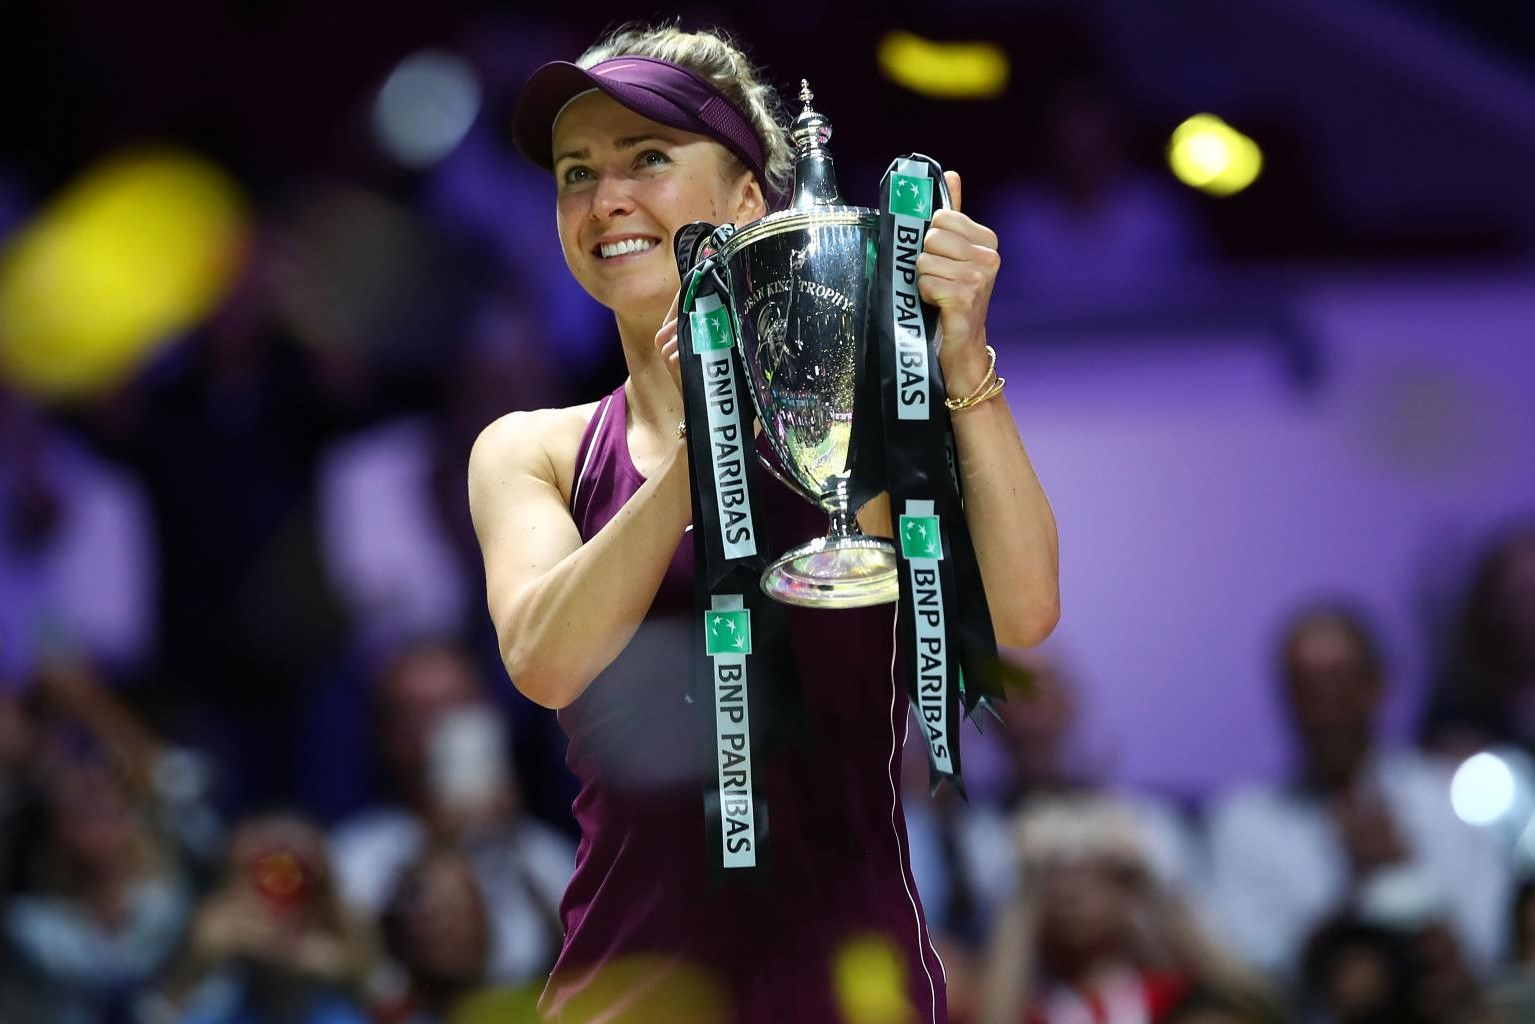 Svitolina wins the 2018 WTA Finals in Singapore